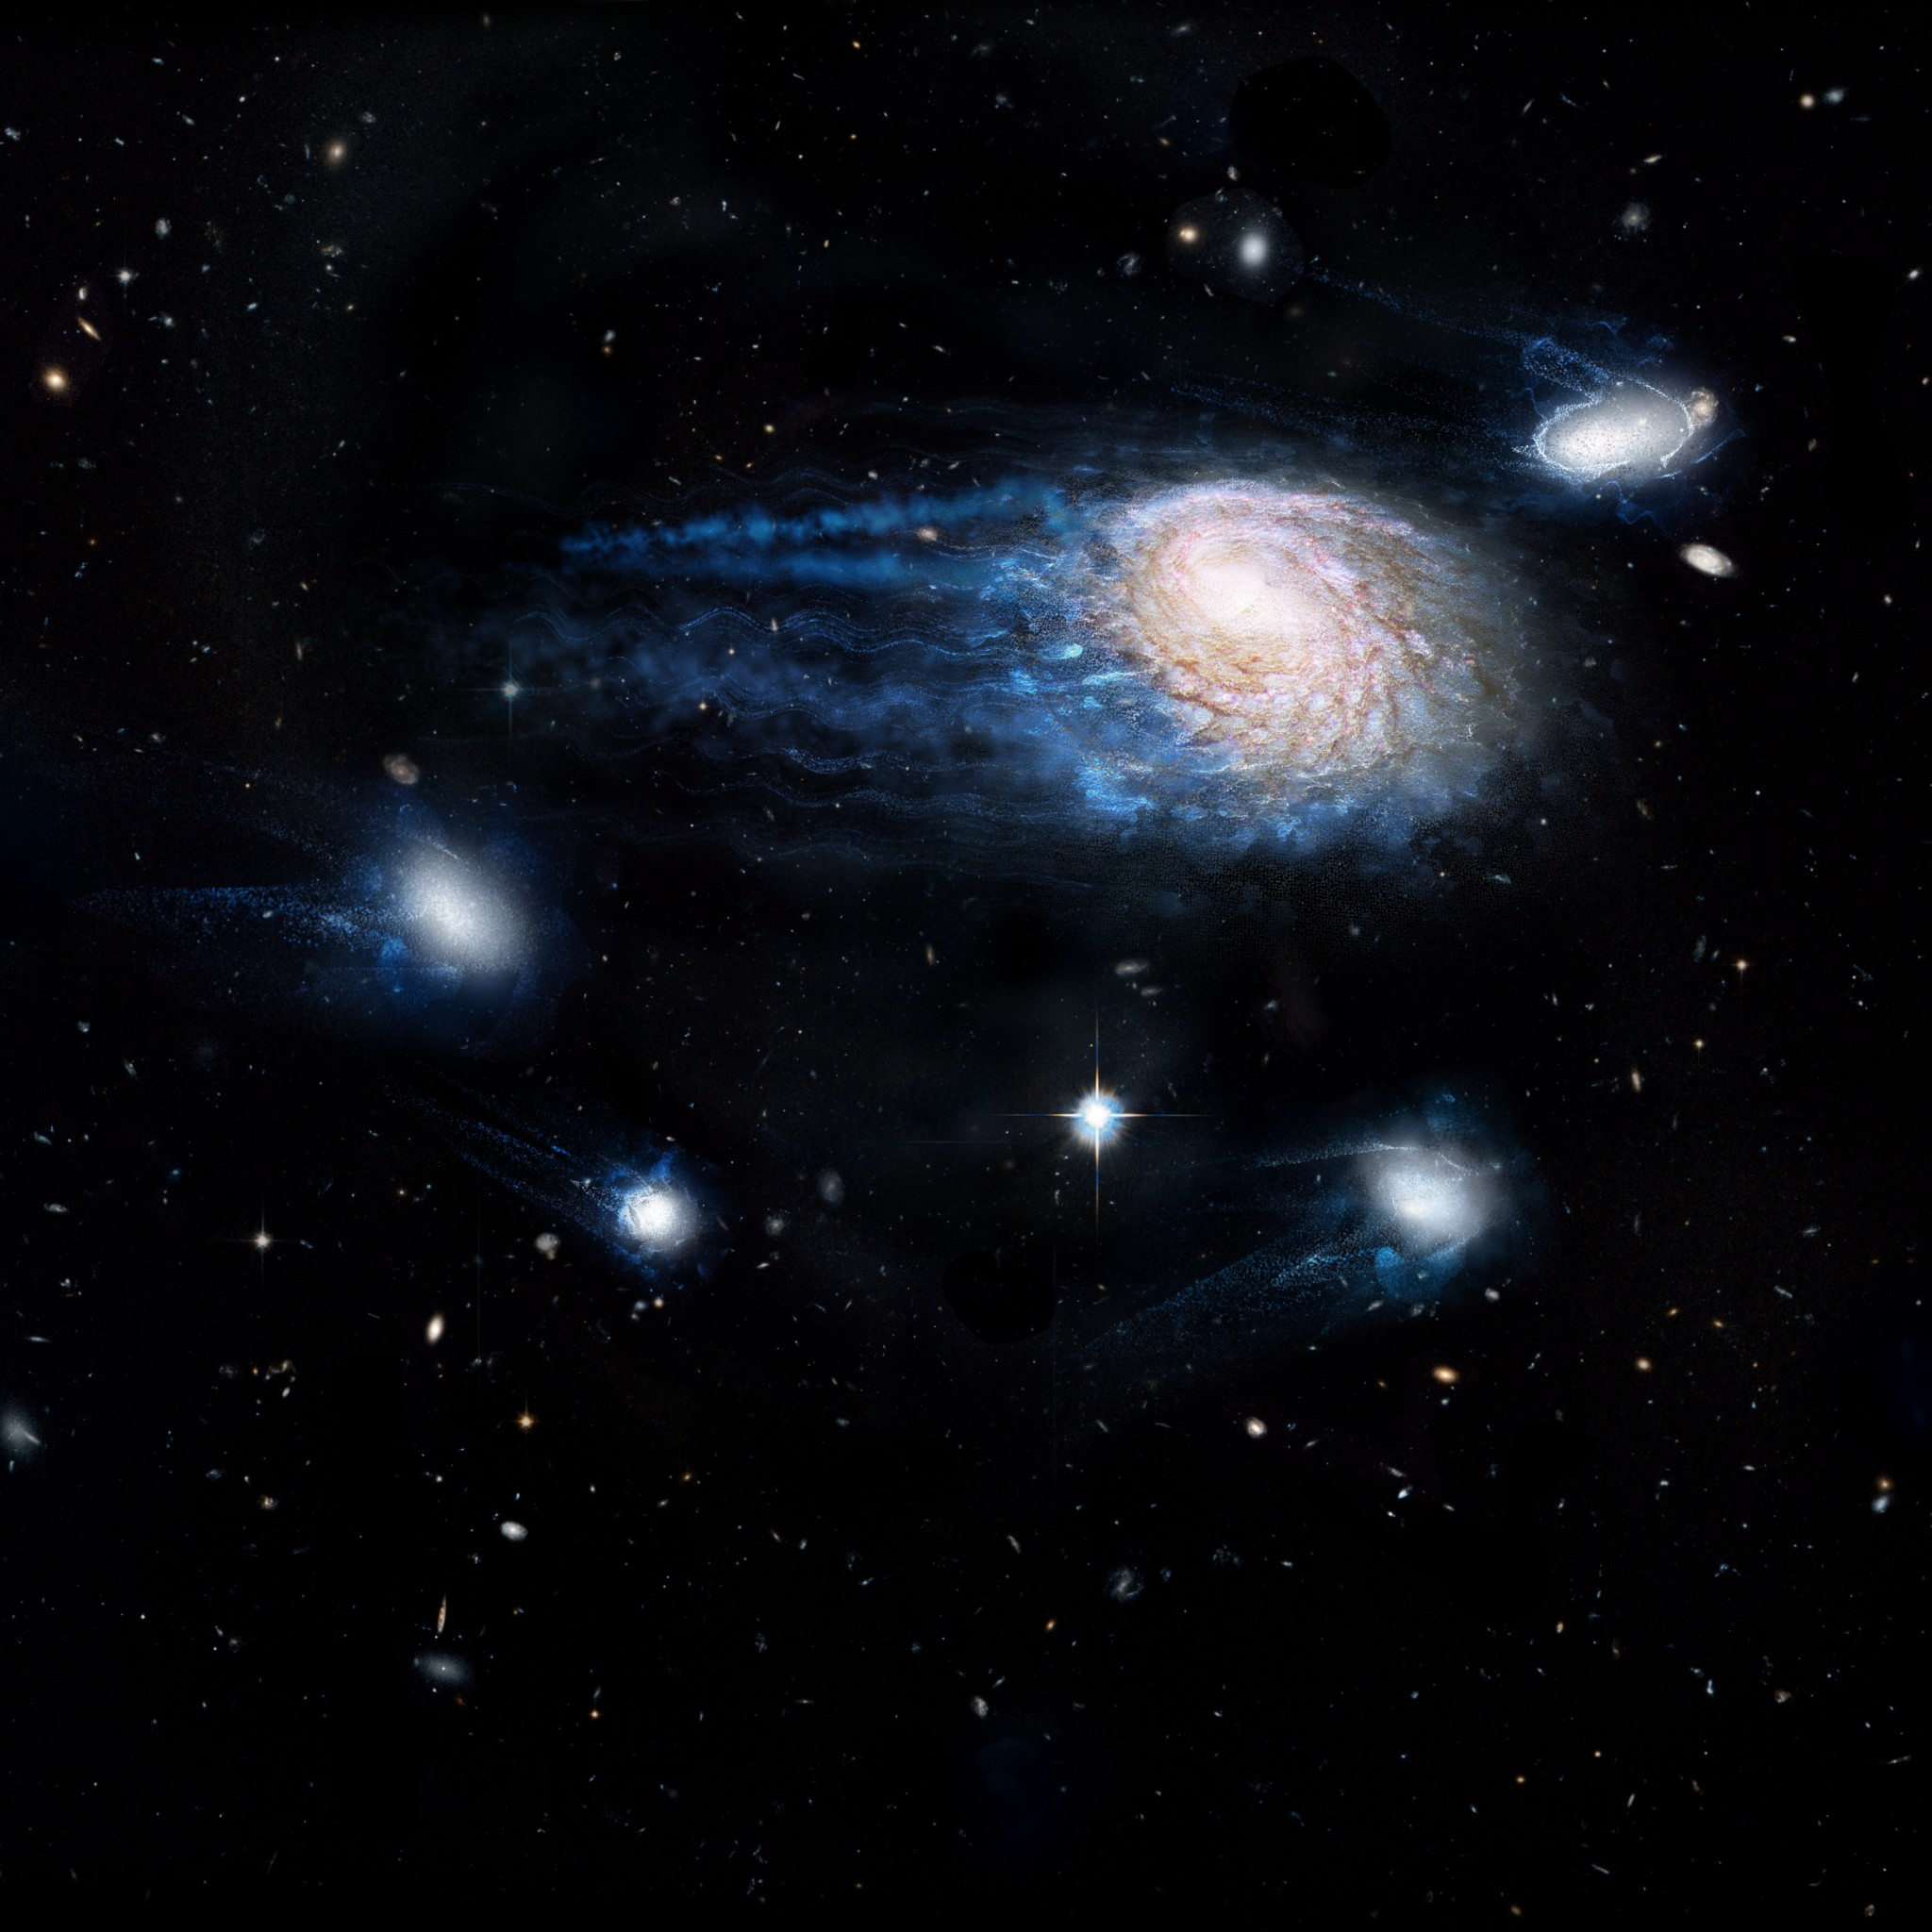 Artist's impression showing the increasing effect of ram-pressure stripping in removing gas from galaxies, sending them to an early death. - Image Credit: ICRAR/NASA/ESA/Hubble Heritage Team (STScI/AURA)